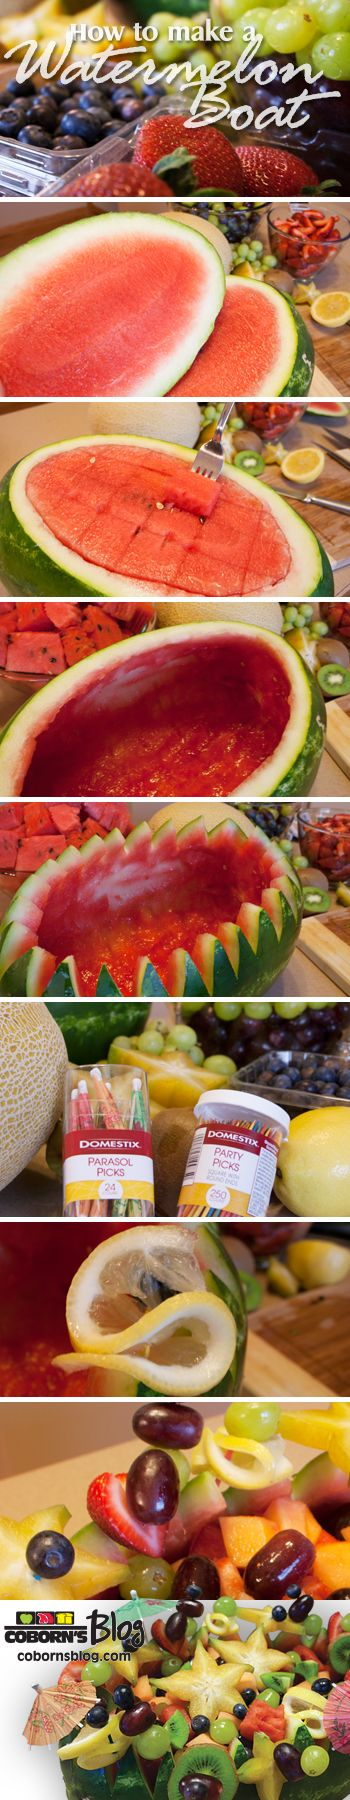 How to make a watermelon boat. Simple step by step instructions. www.cobornsblog.com